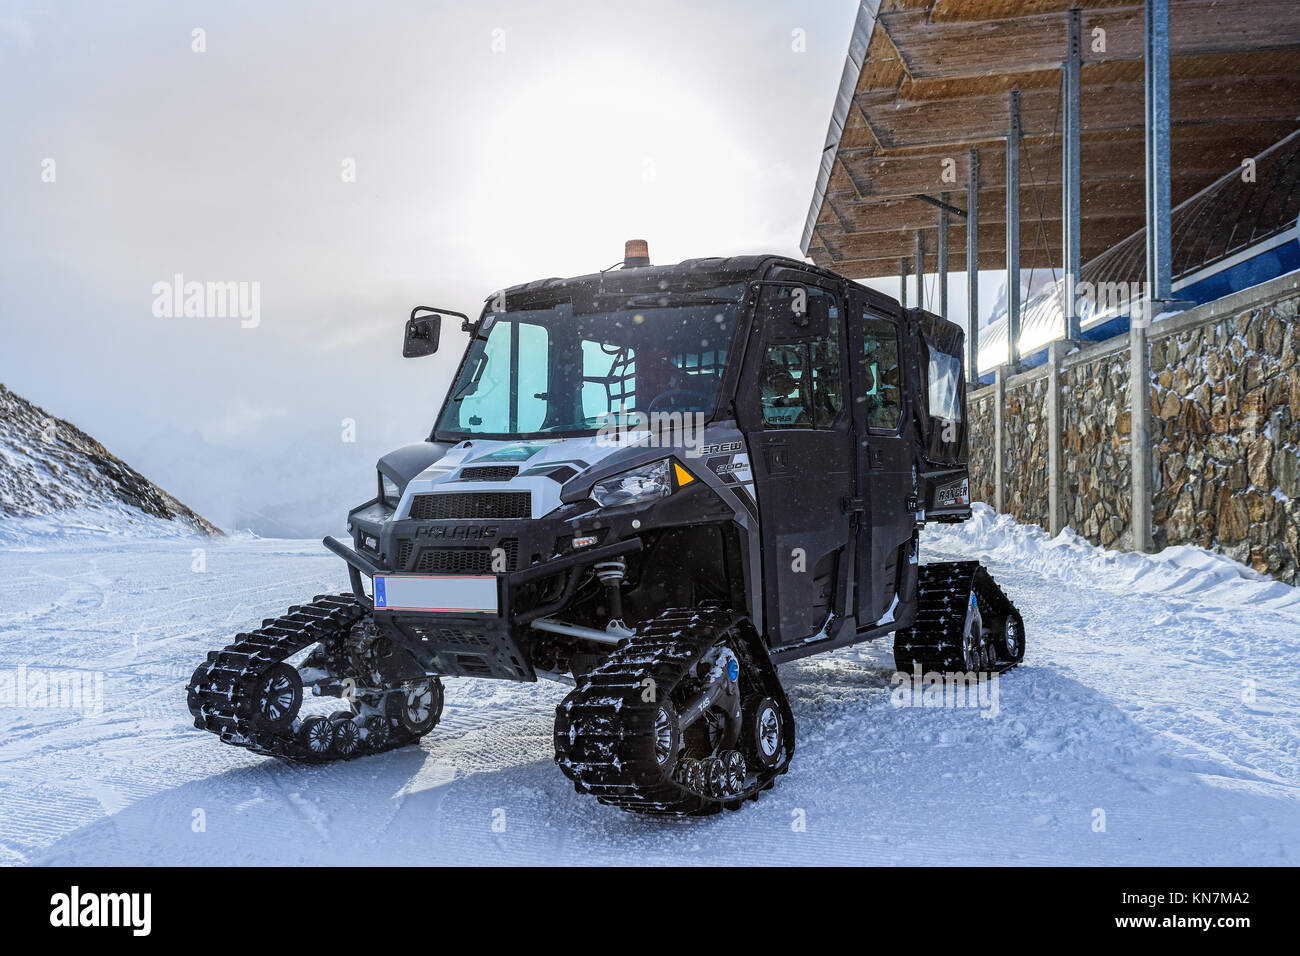 Polaris ranger 900 at Serfaus/Fis - Stock Image